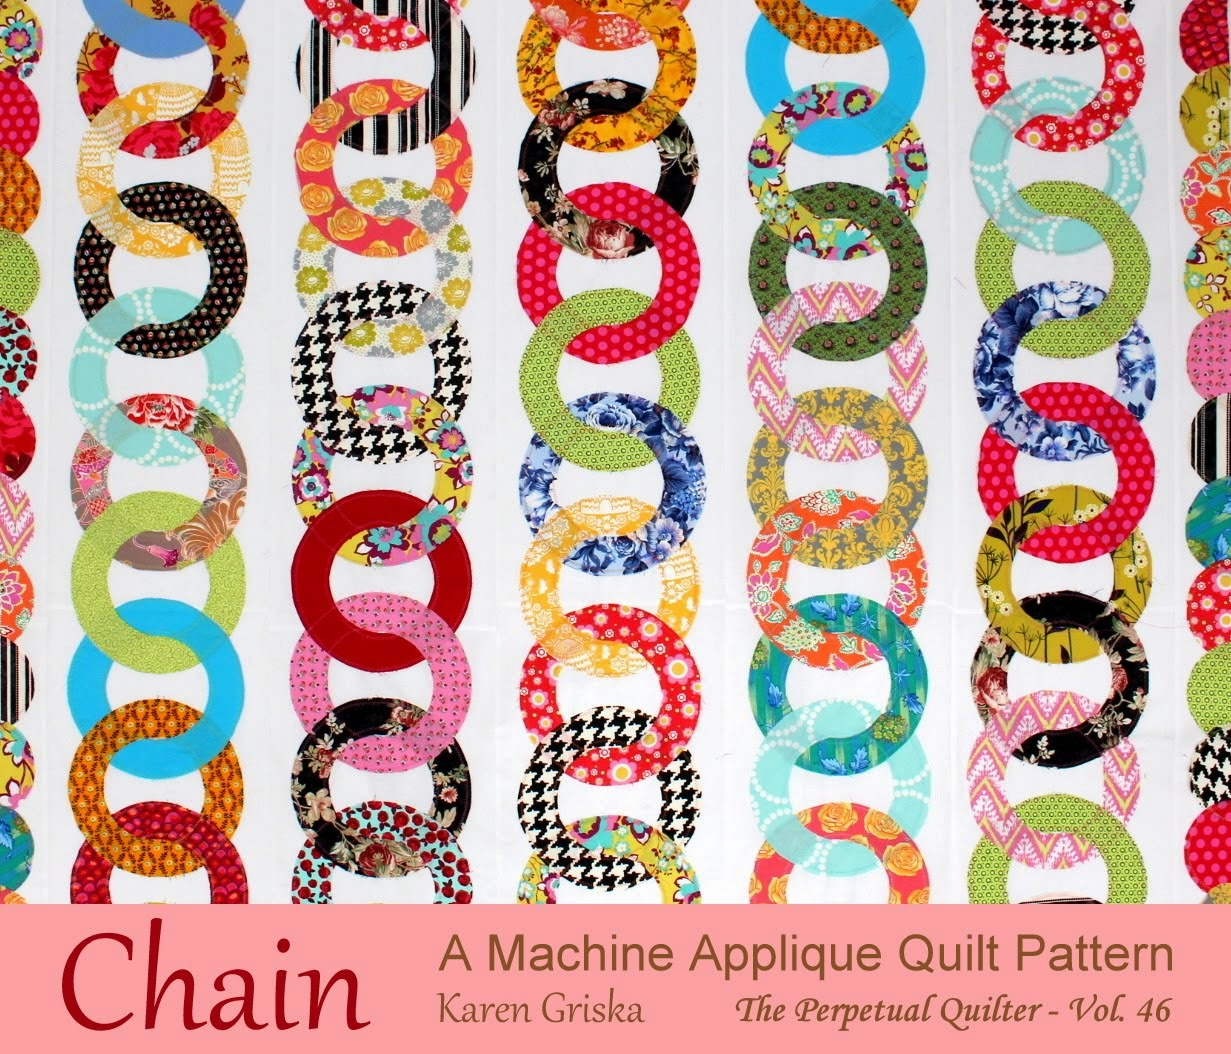 New Chain Quilt Pattern!